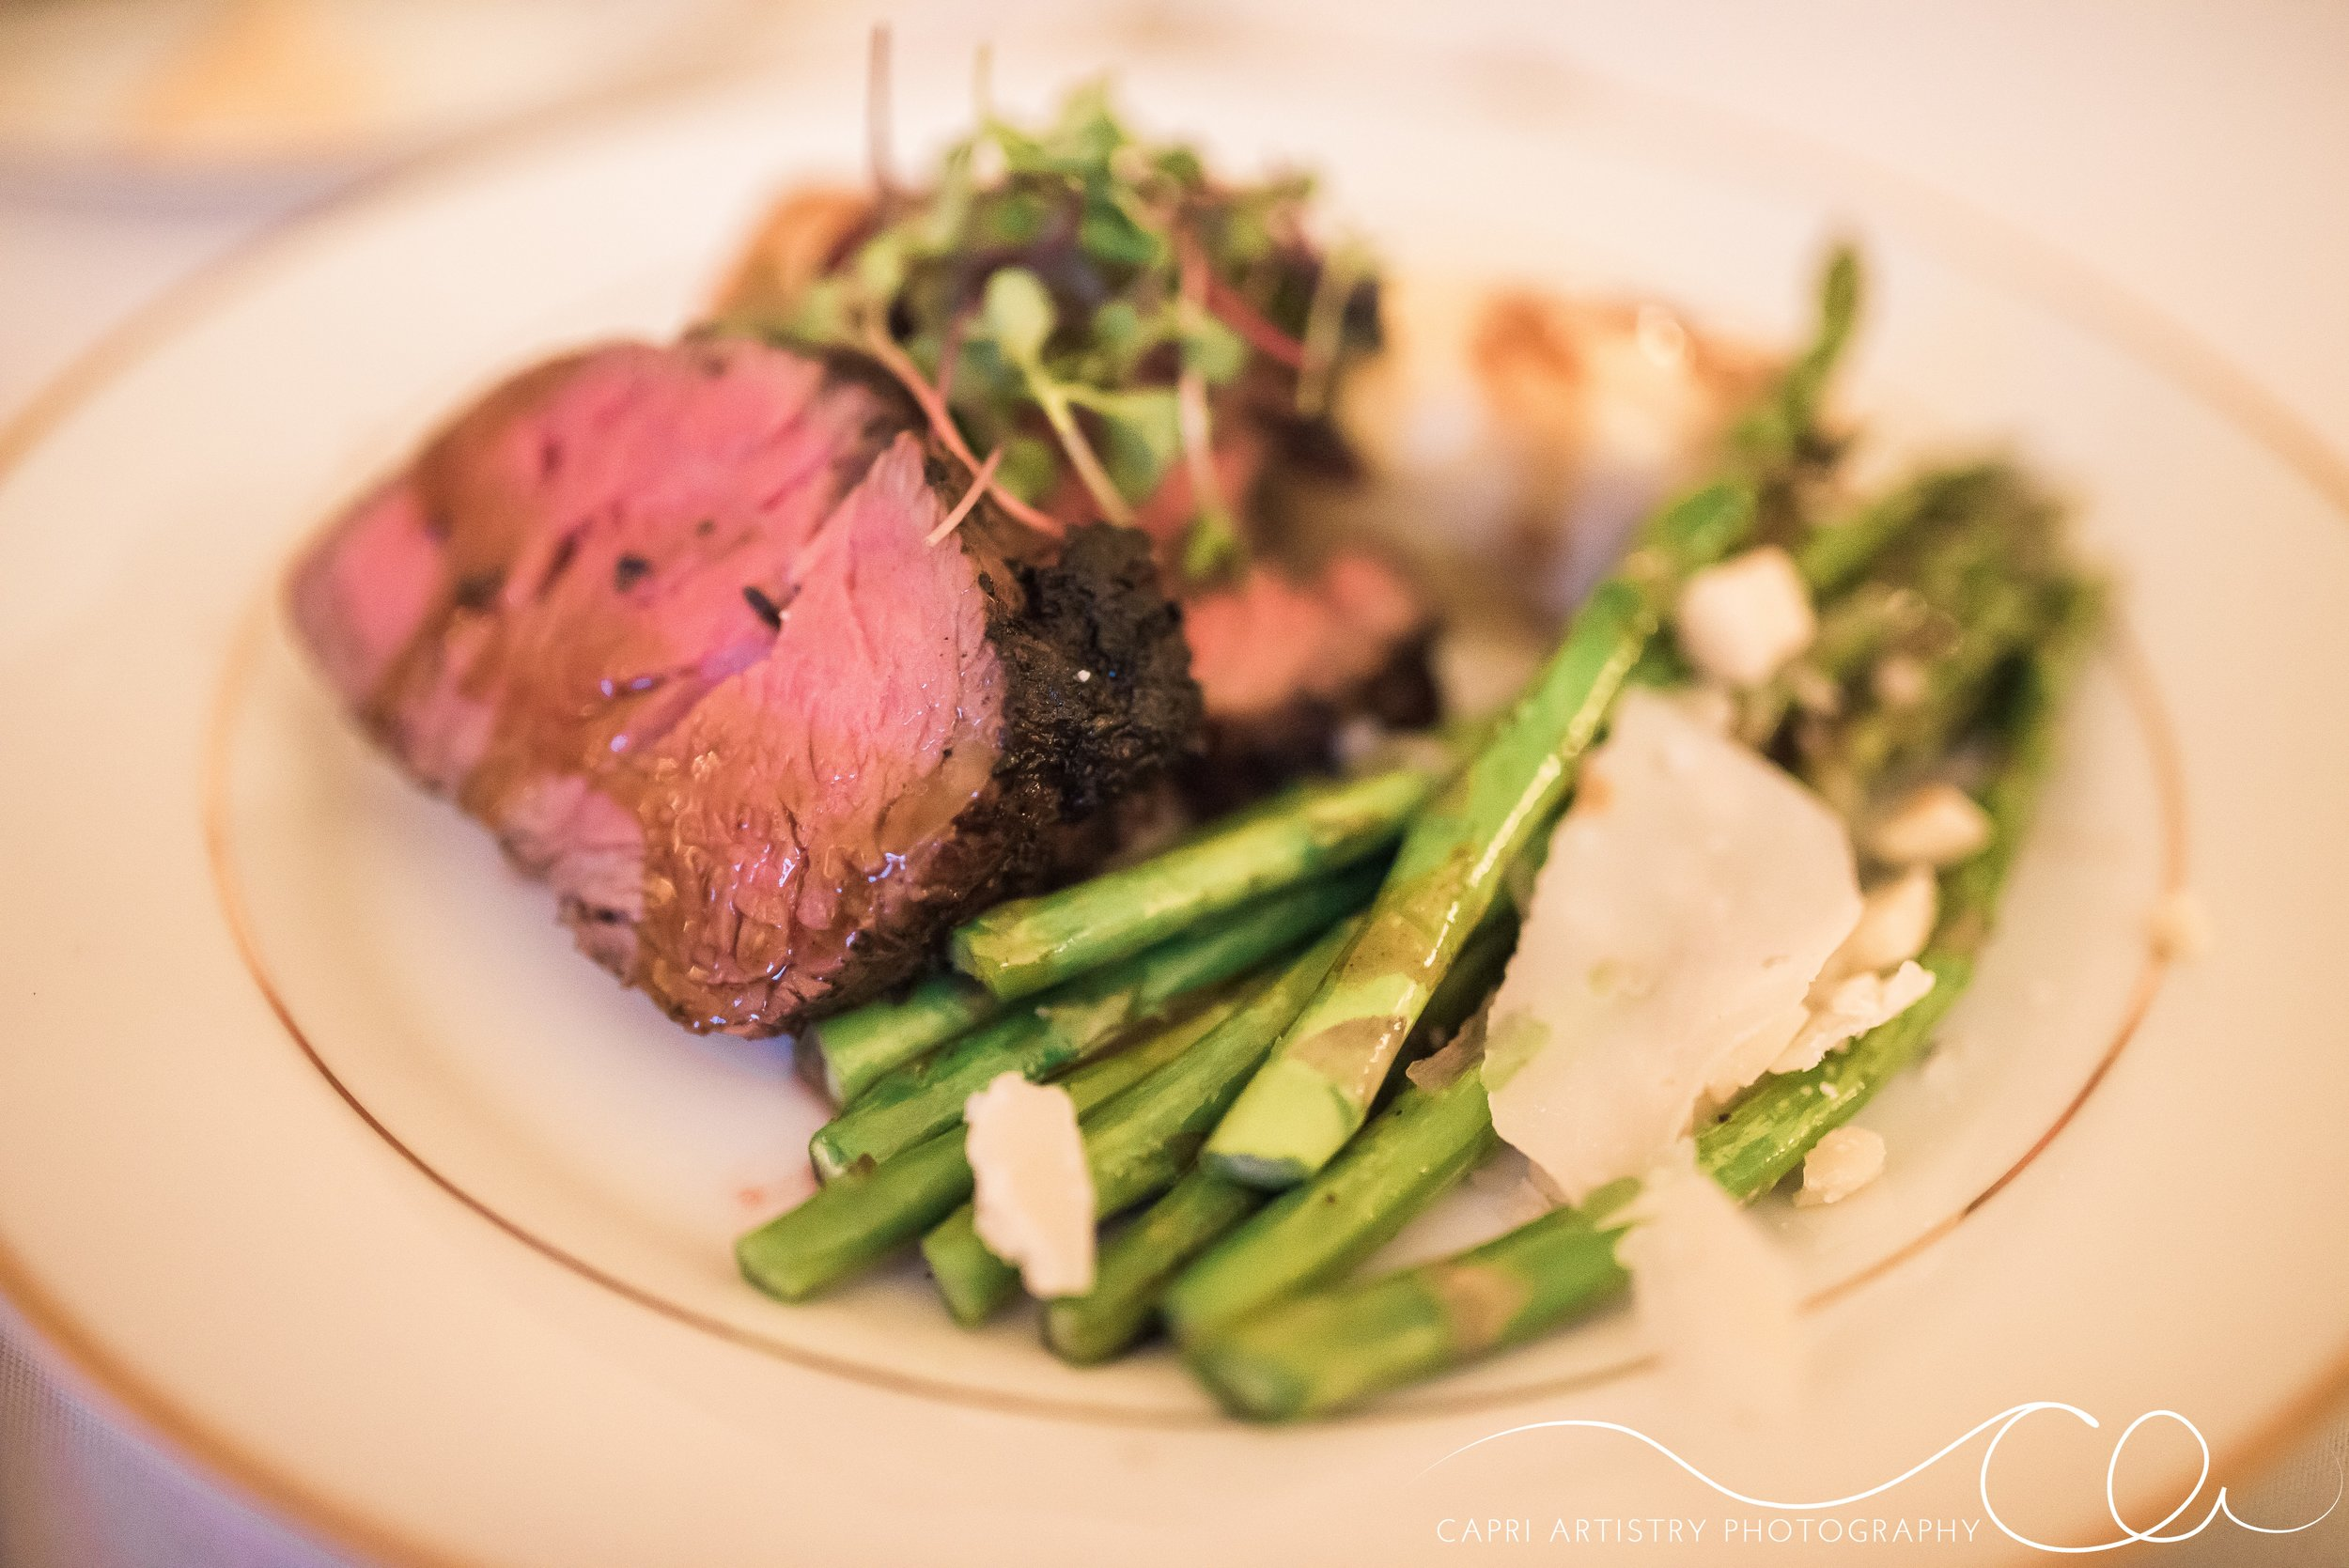 Beef dinner plate photo by Capri Artistry Photography.jpg